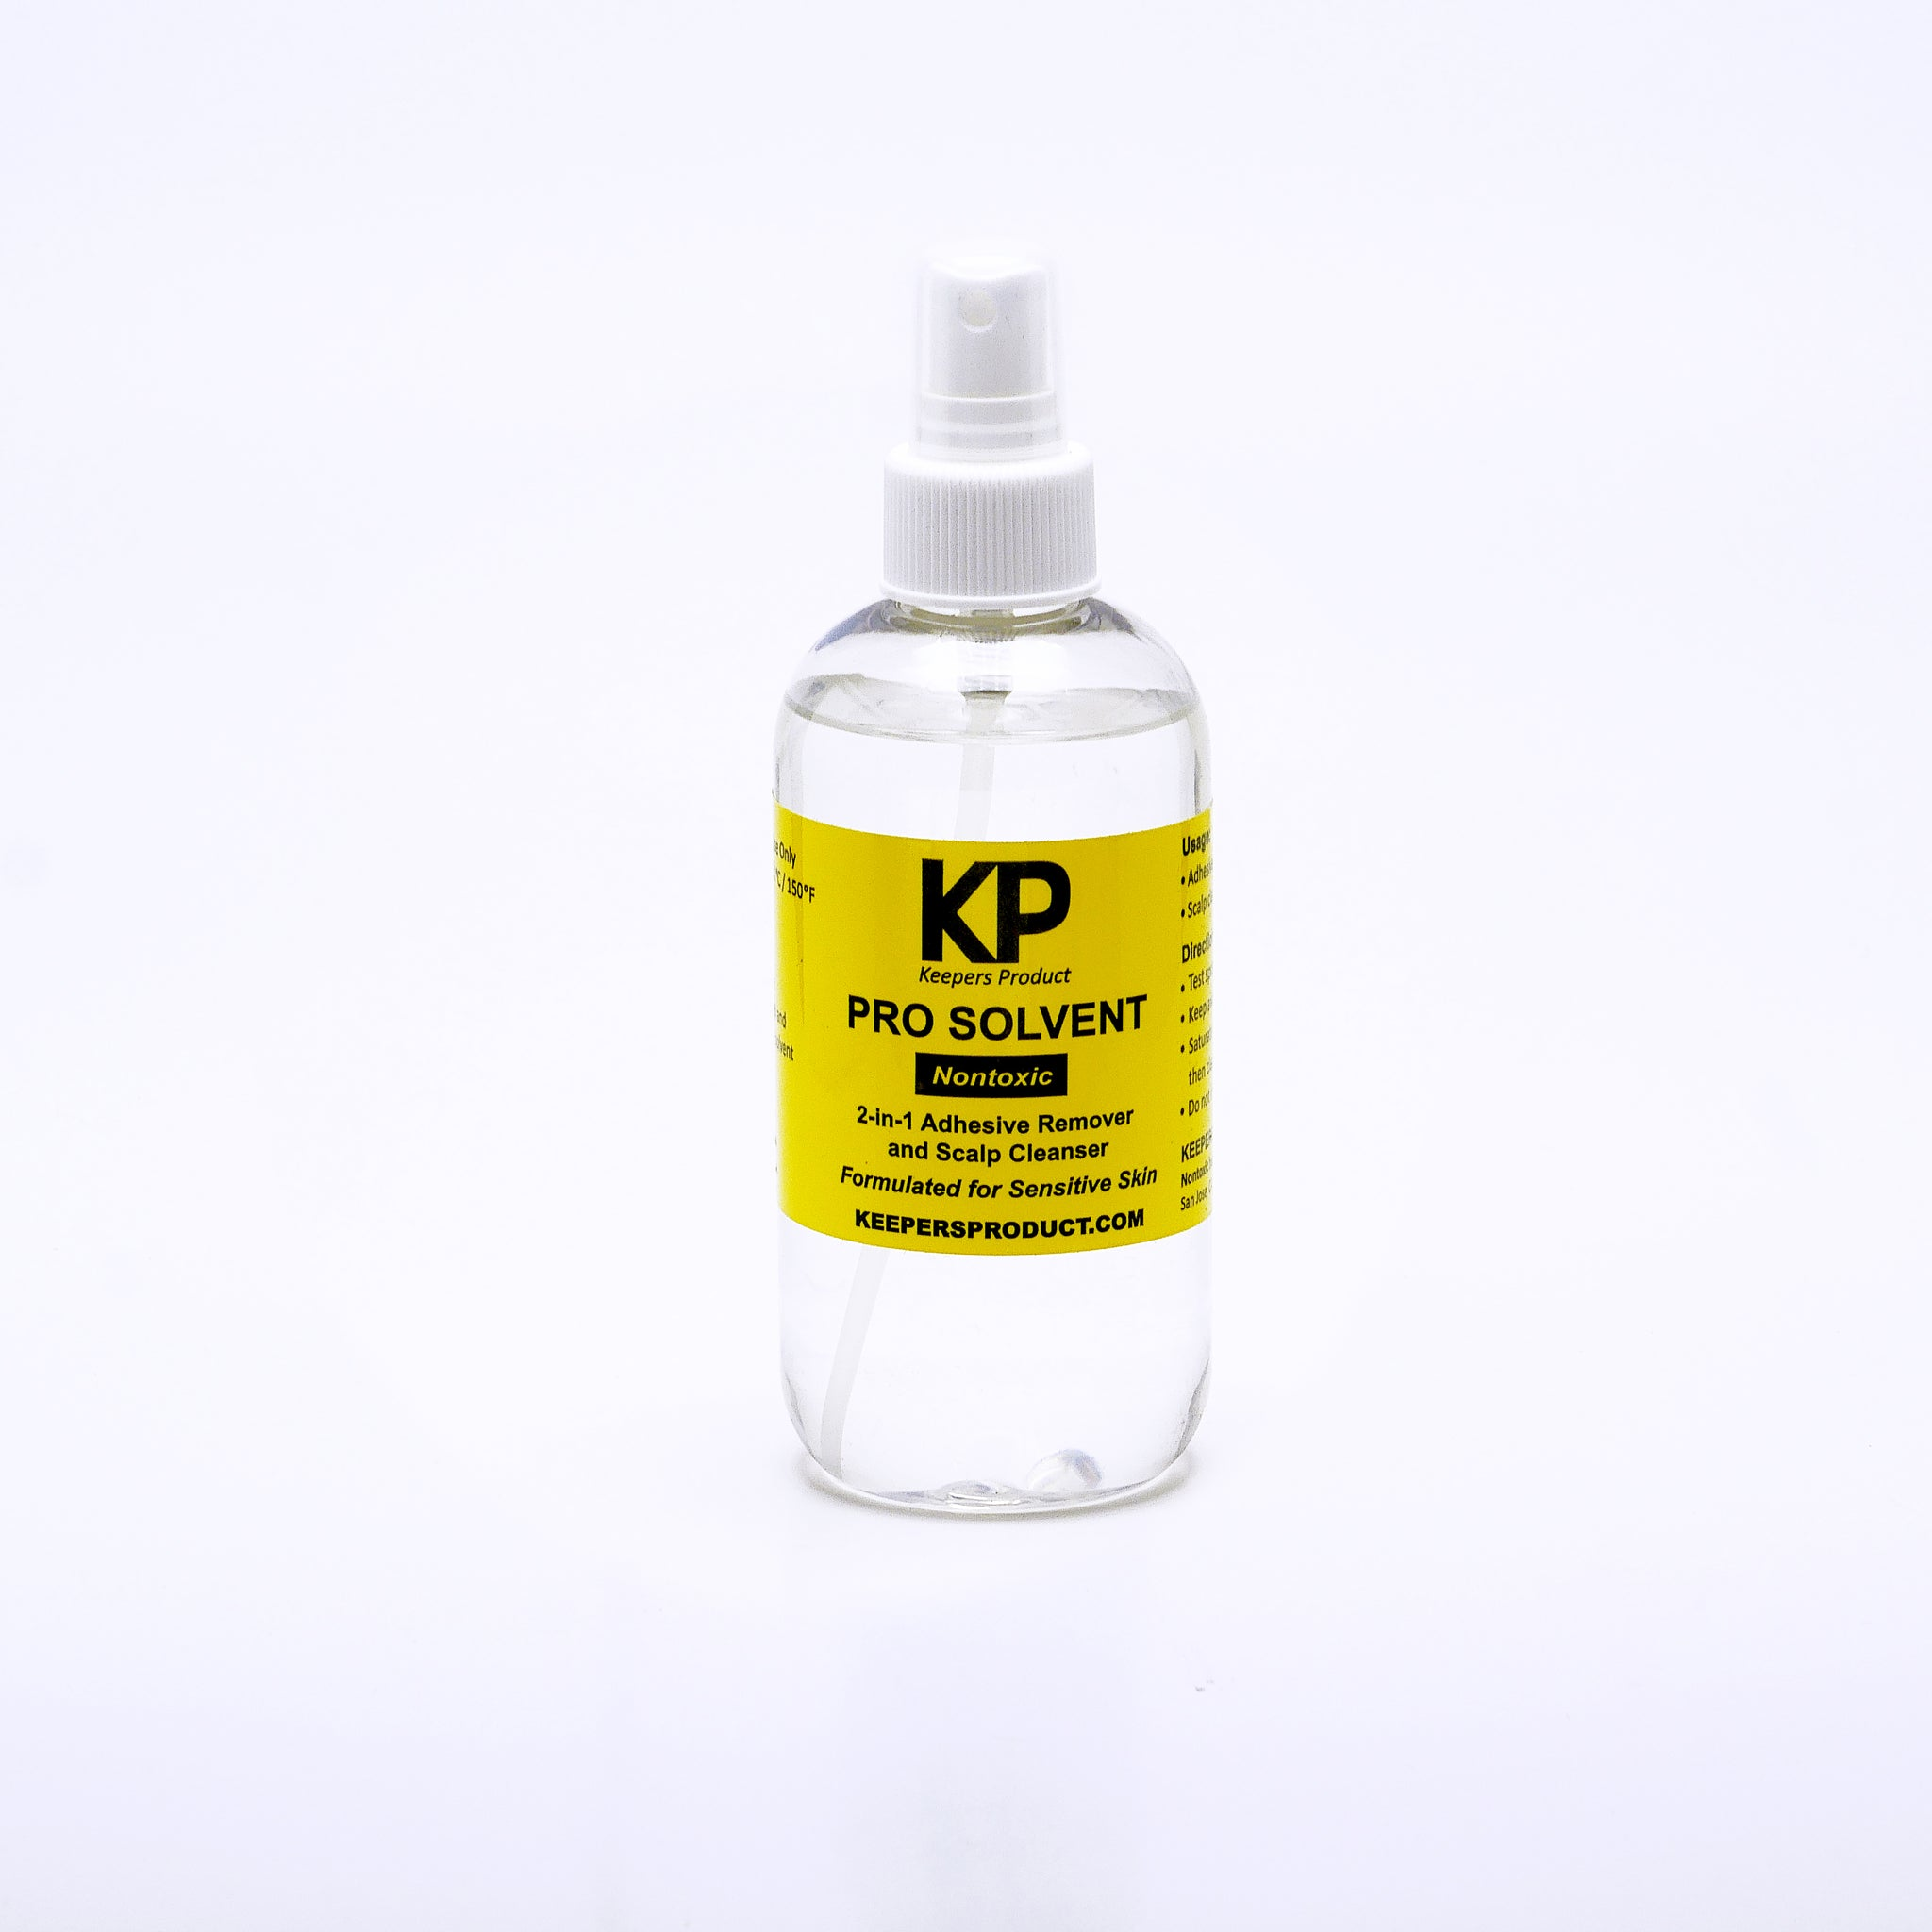 KP PRO SOLVENT - Scalp Cleanser & Adhesive Remover (8oz)